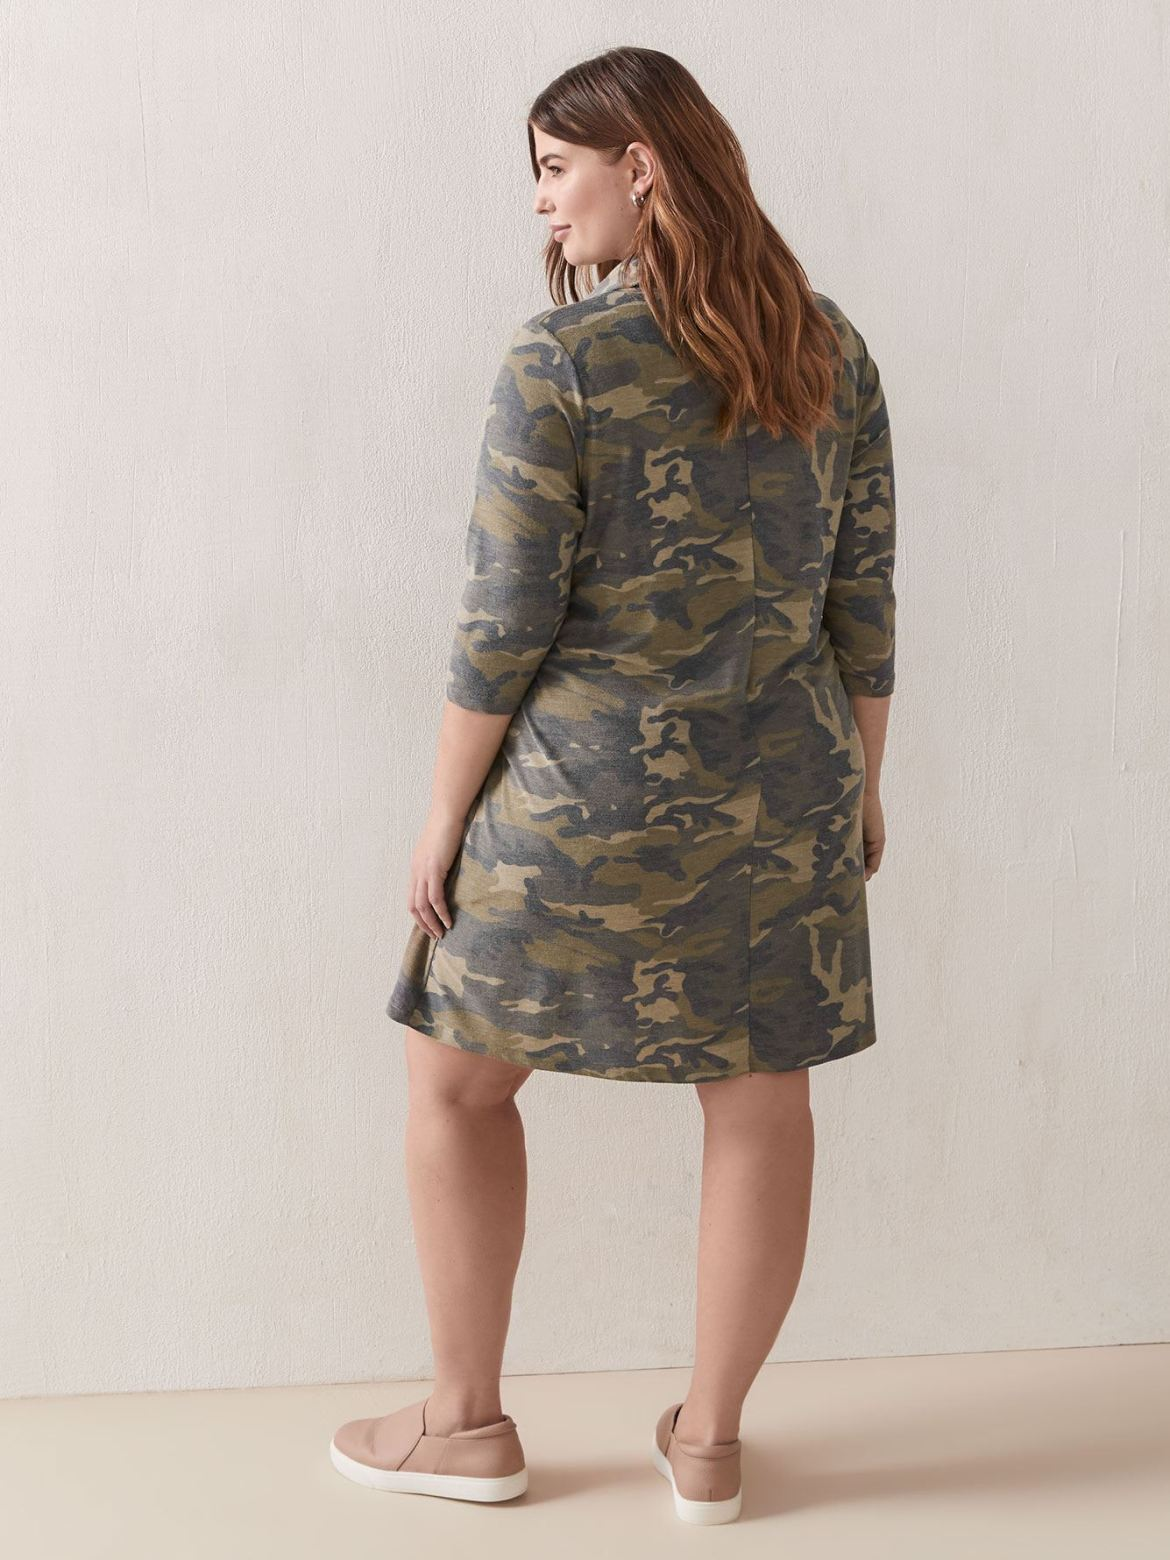 Cowl Neck 3/4 Sleeve Knit Dress - In Every Story